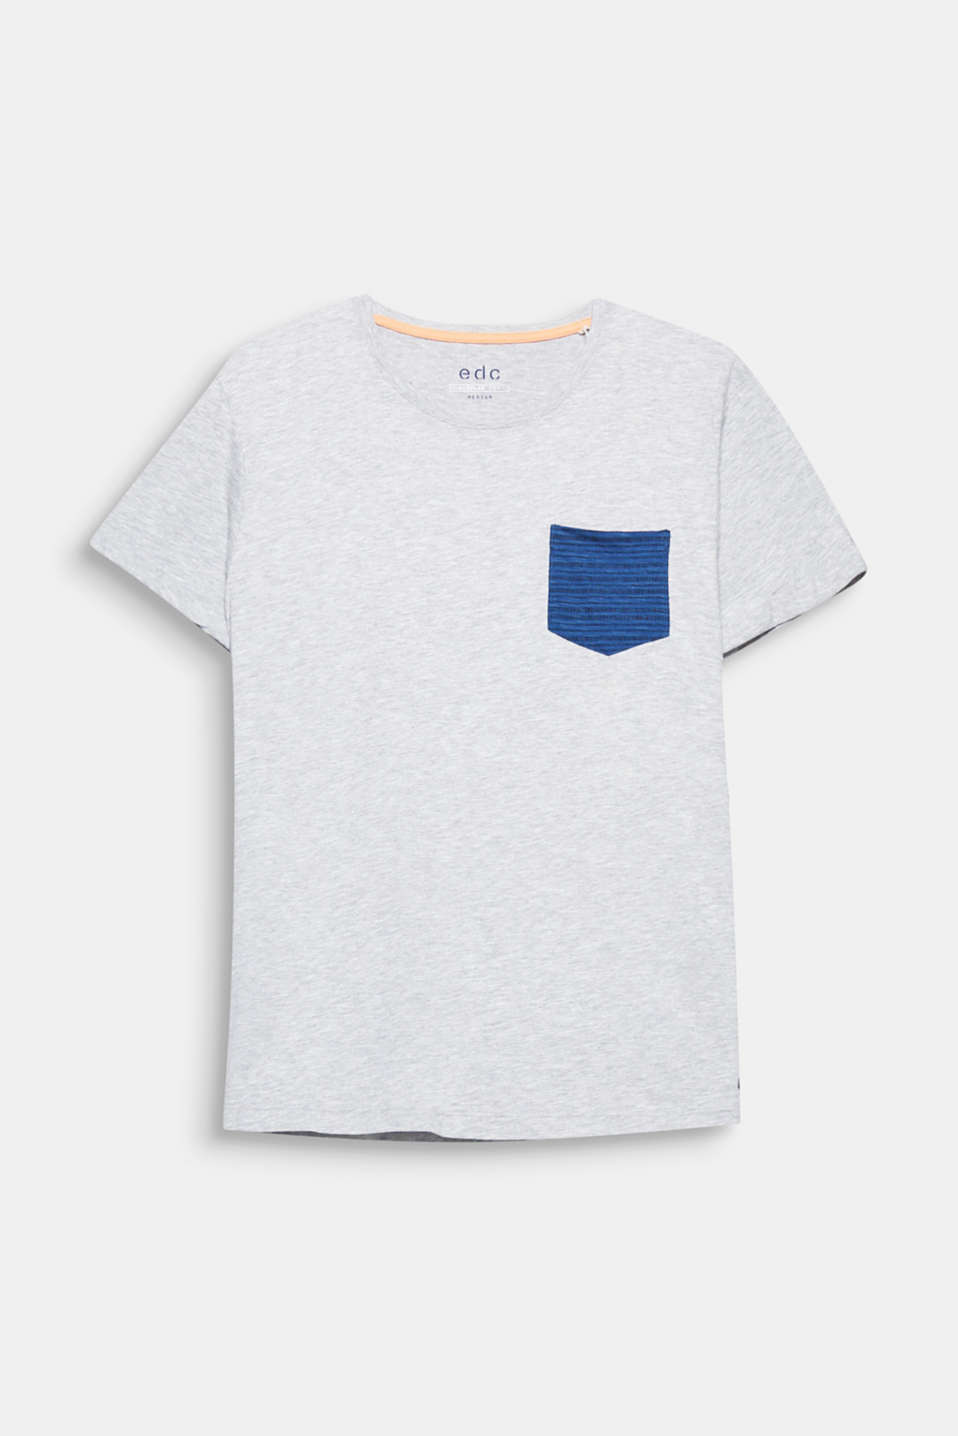 The printed chest pocket creates a trendy accent. Cotton blend T-shirt.